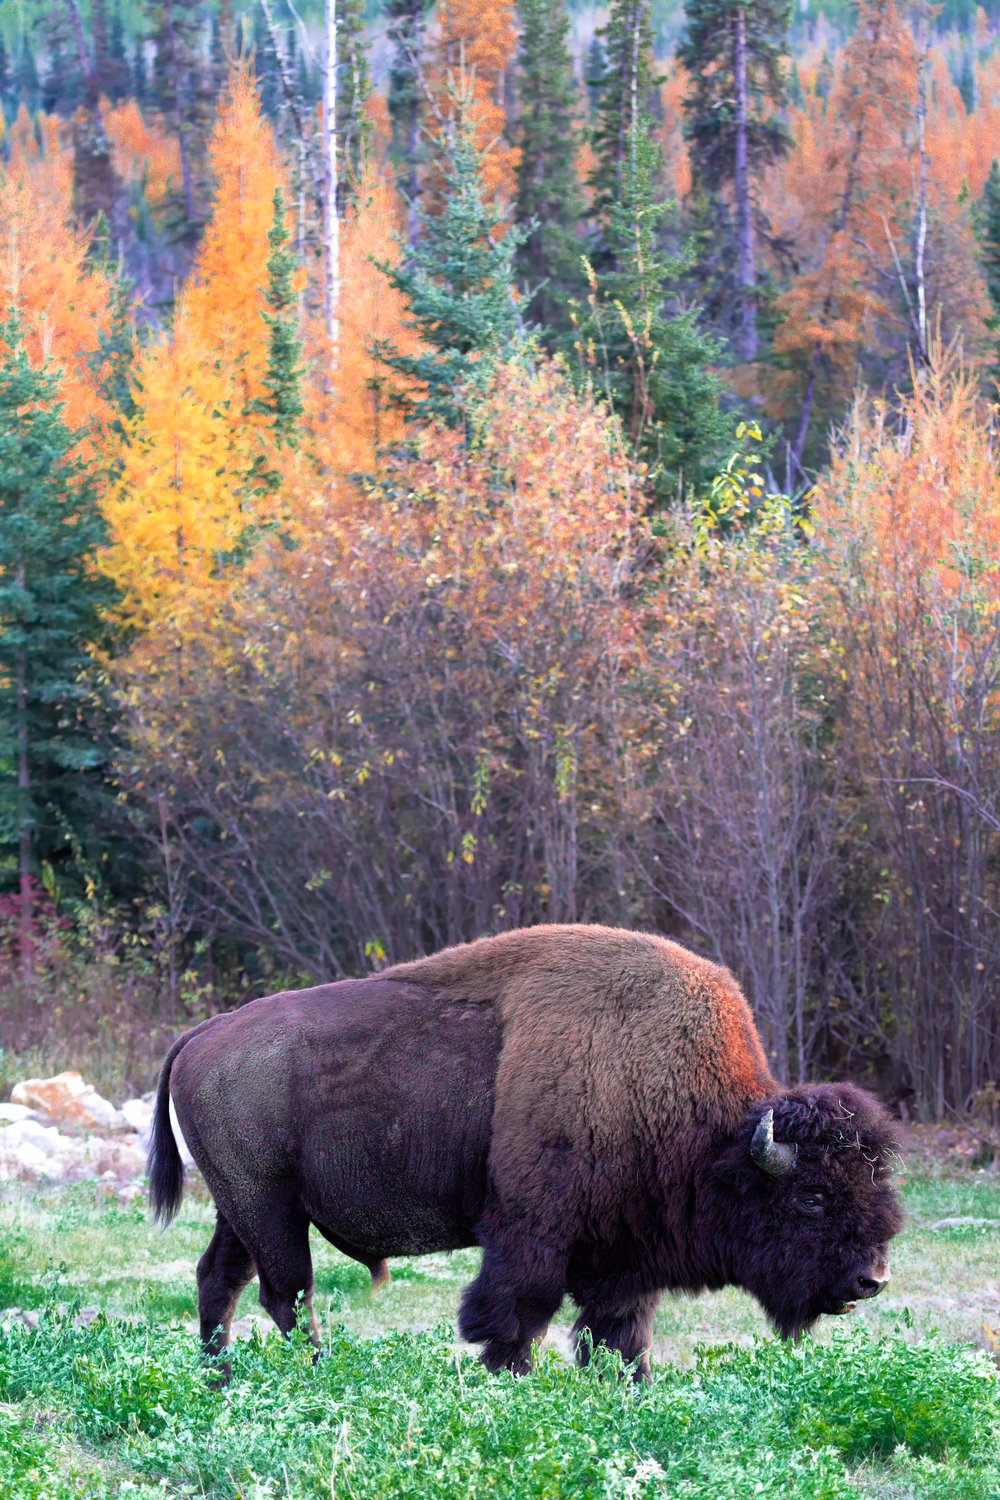 Bison-Autumn-Trees.jpg